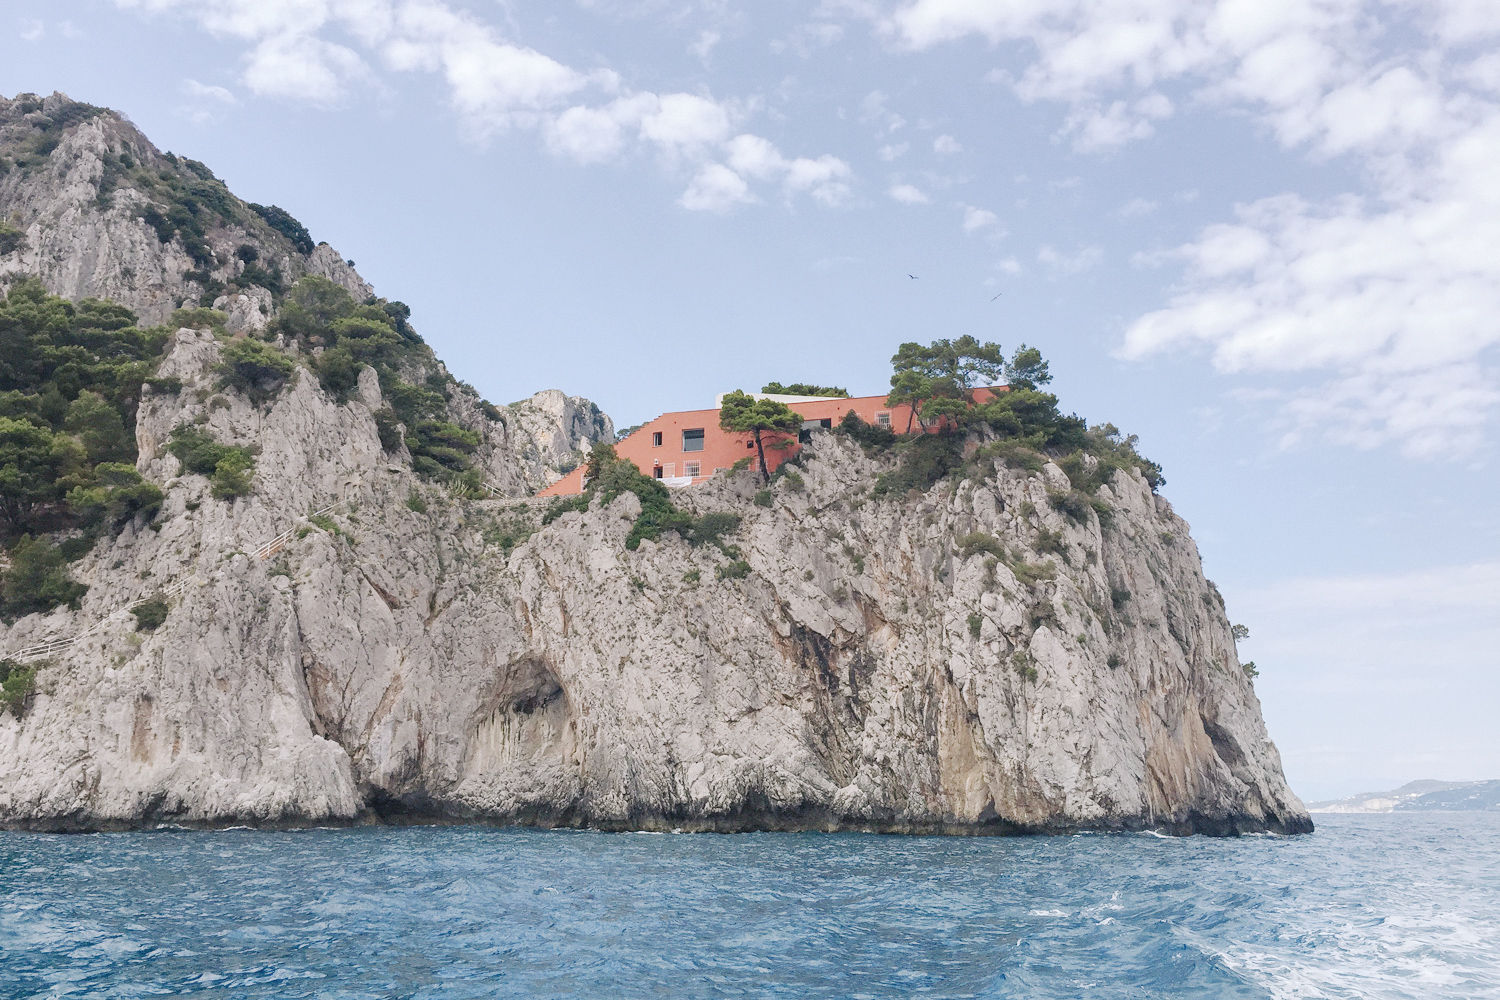 Views of Villa Malaparte, an architectural icon loved by design enthusiasts and film location for 1963's Contempt, starring Brigitte Bardot